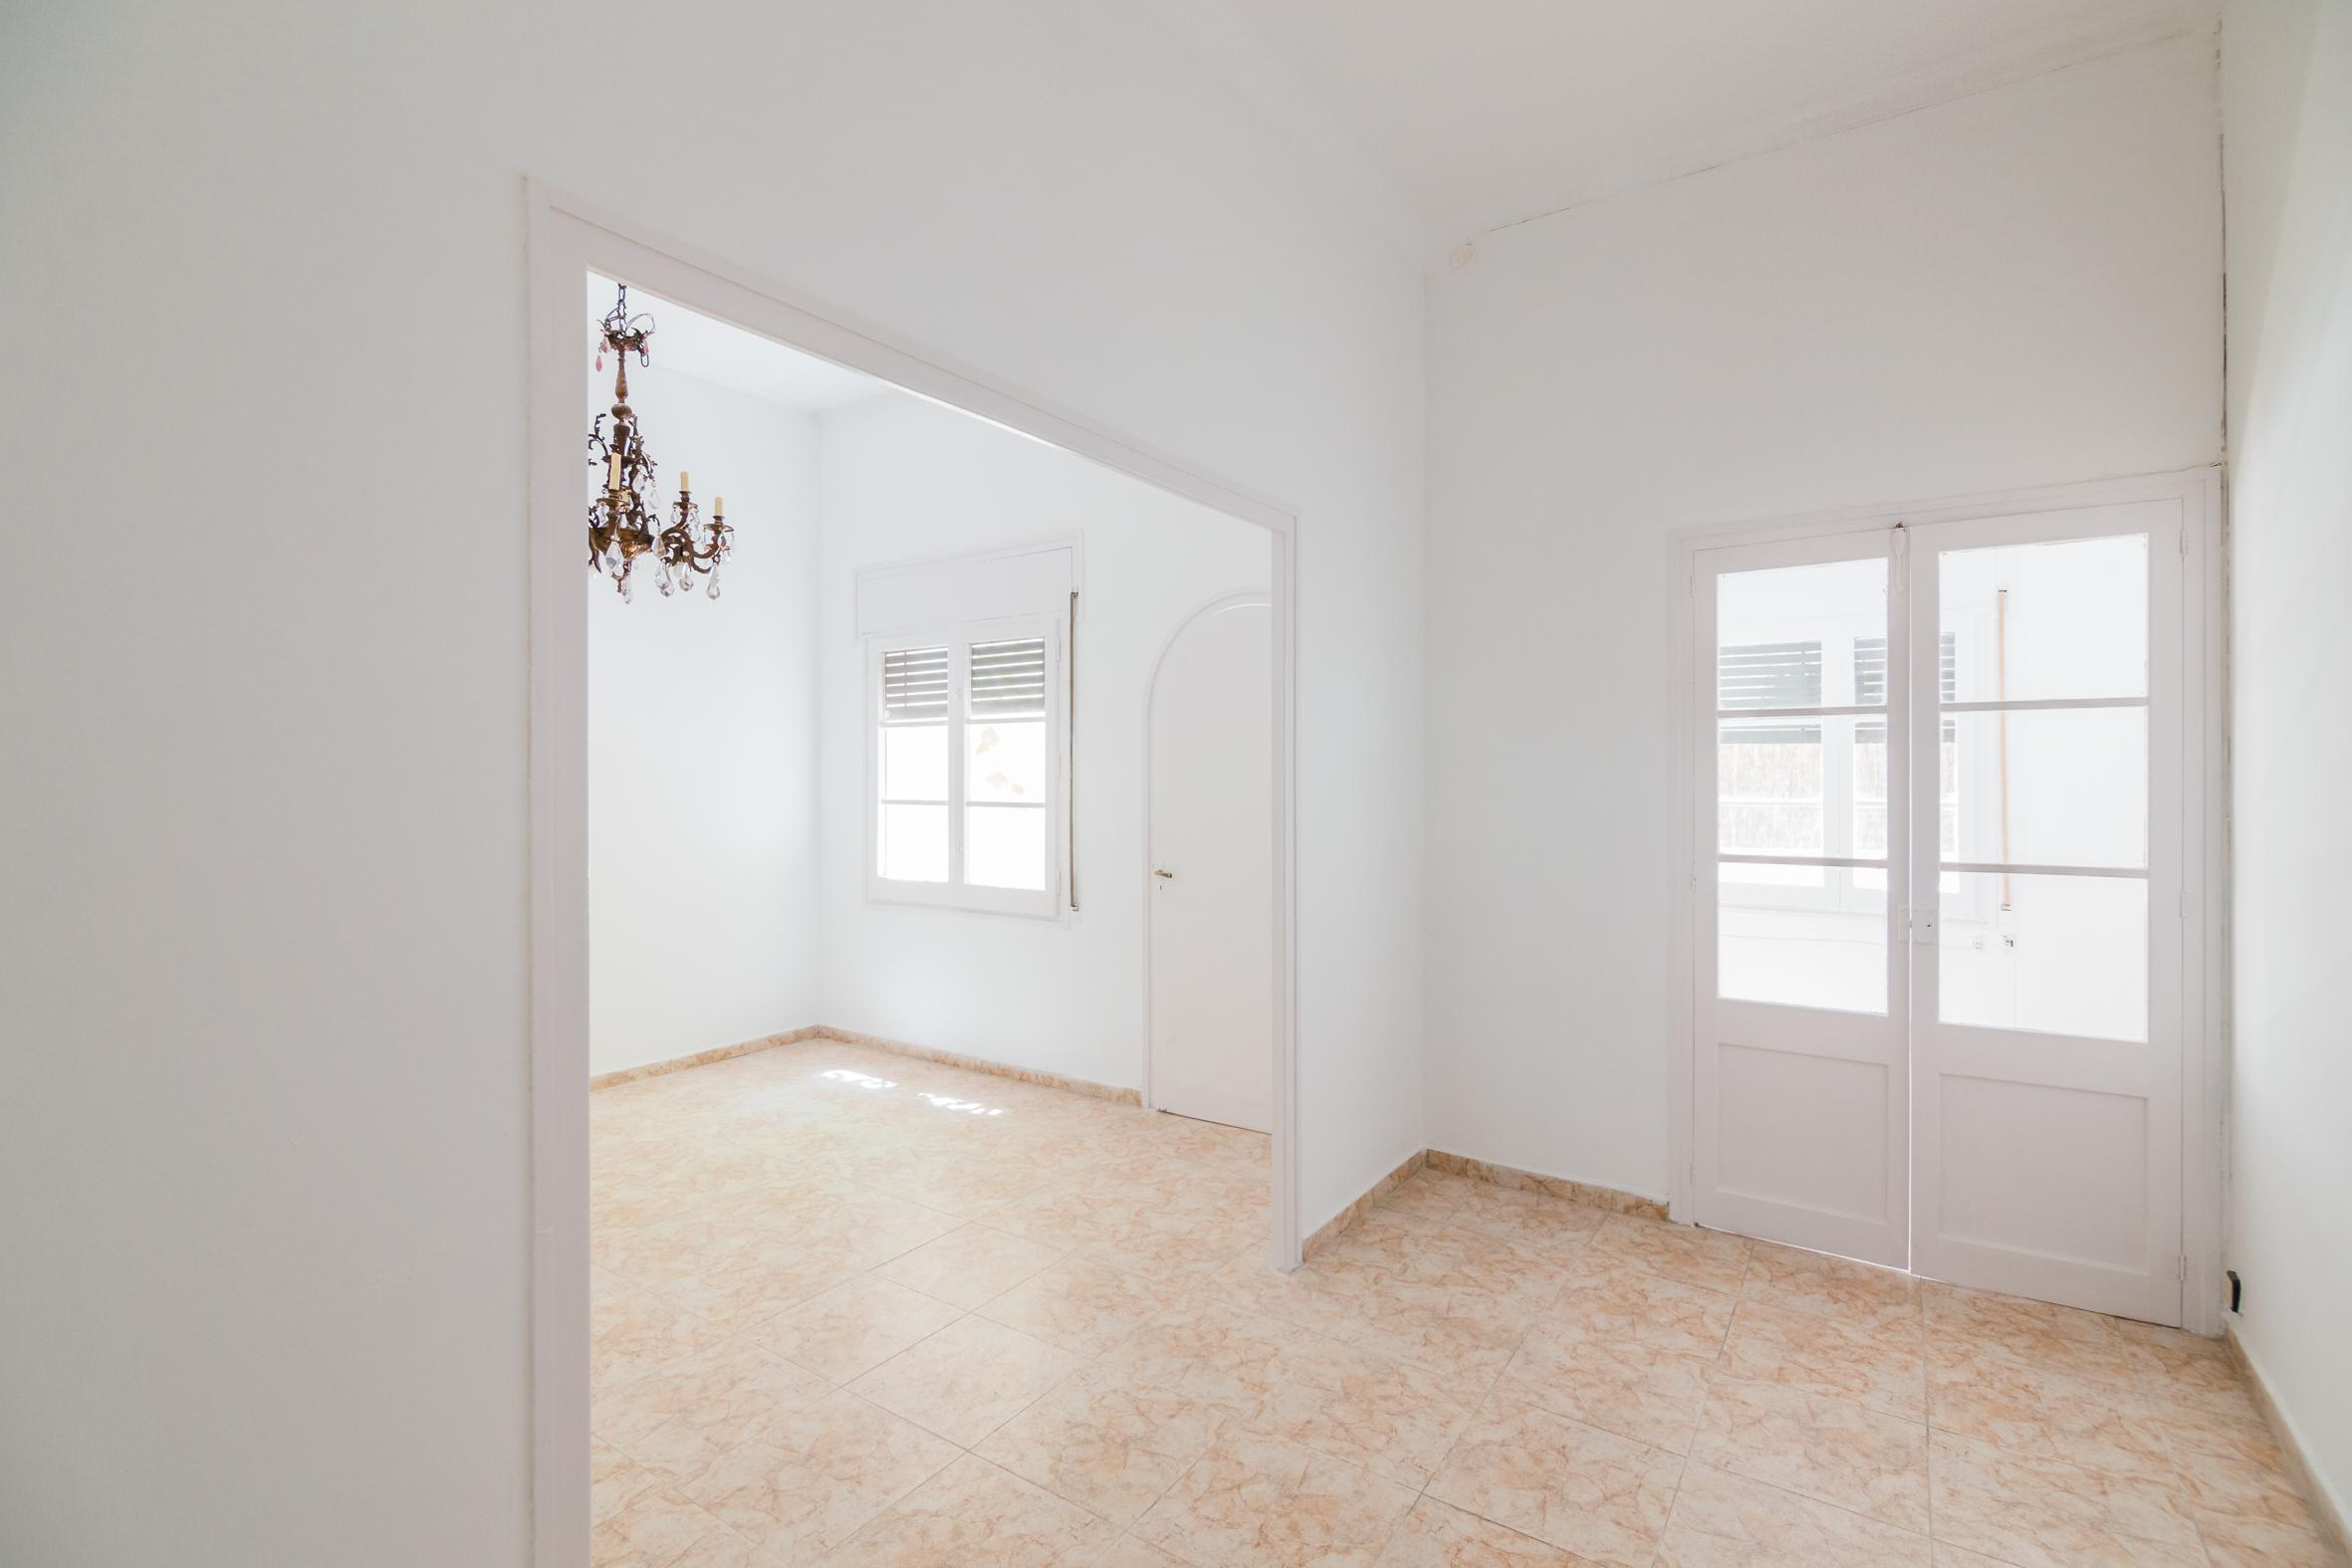 205188 Apartment for sale in Sarrià-Sant Gervasi, St. Gervasi-Bonanova 3